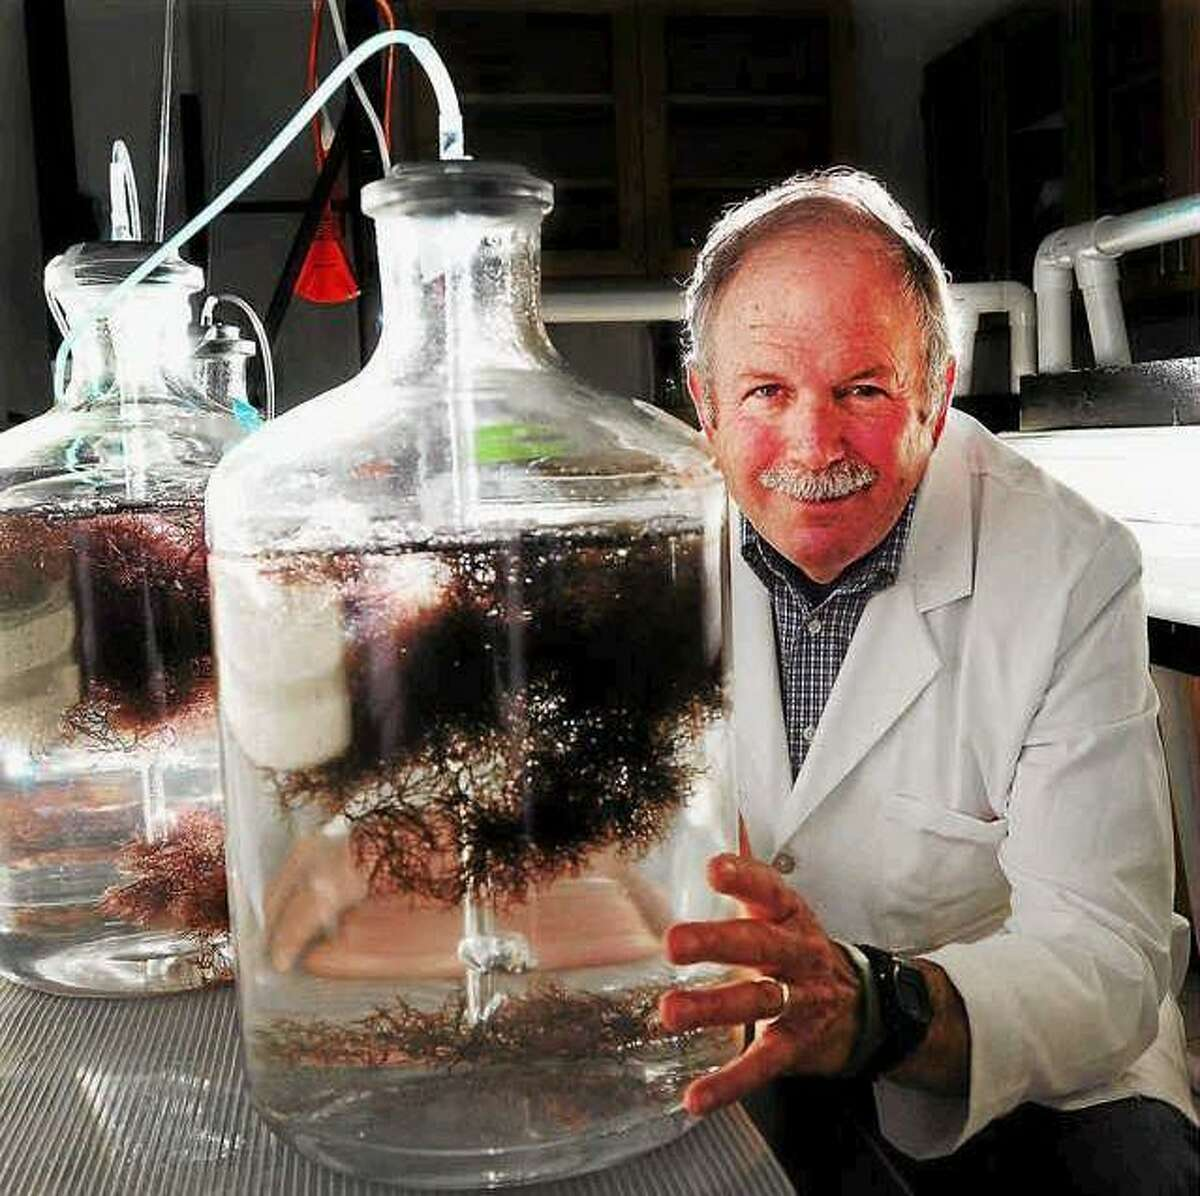 Charles Yarish, a world expert in aquaculture cultivated seaweed, sits in a seaweed nursery lab with a summer crop of the red seaweed Gracilaria at the Ecology Evolutionary Biology and Marine Sciences department at the University of Connecticut Stamford, Connecticut Branch Wednesday July 10, 2013. Yarish has been involved in research on ways to grow kelp and other seaweed as commercially available sea vegetable crops. Peter Hvizdak -- Register